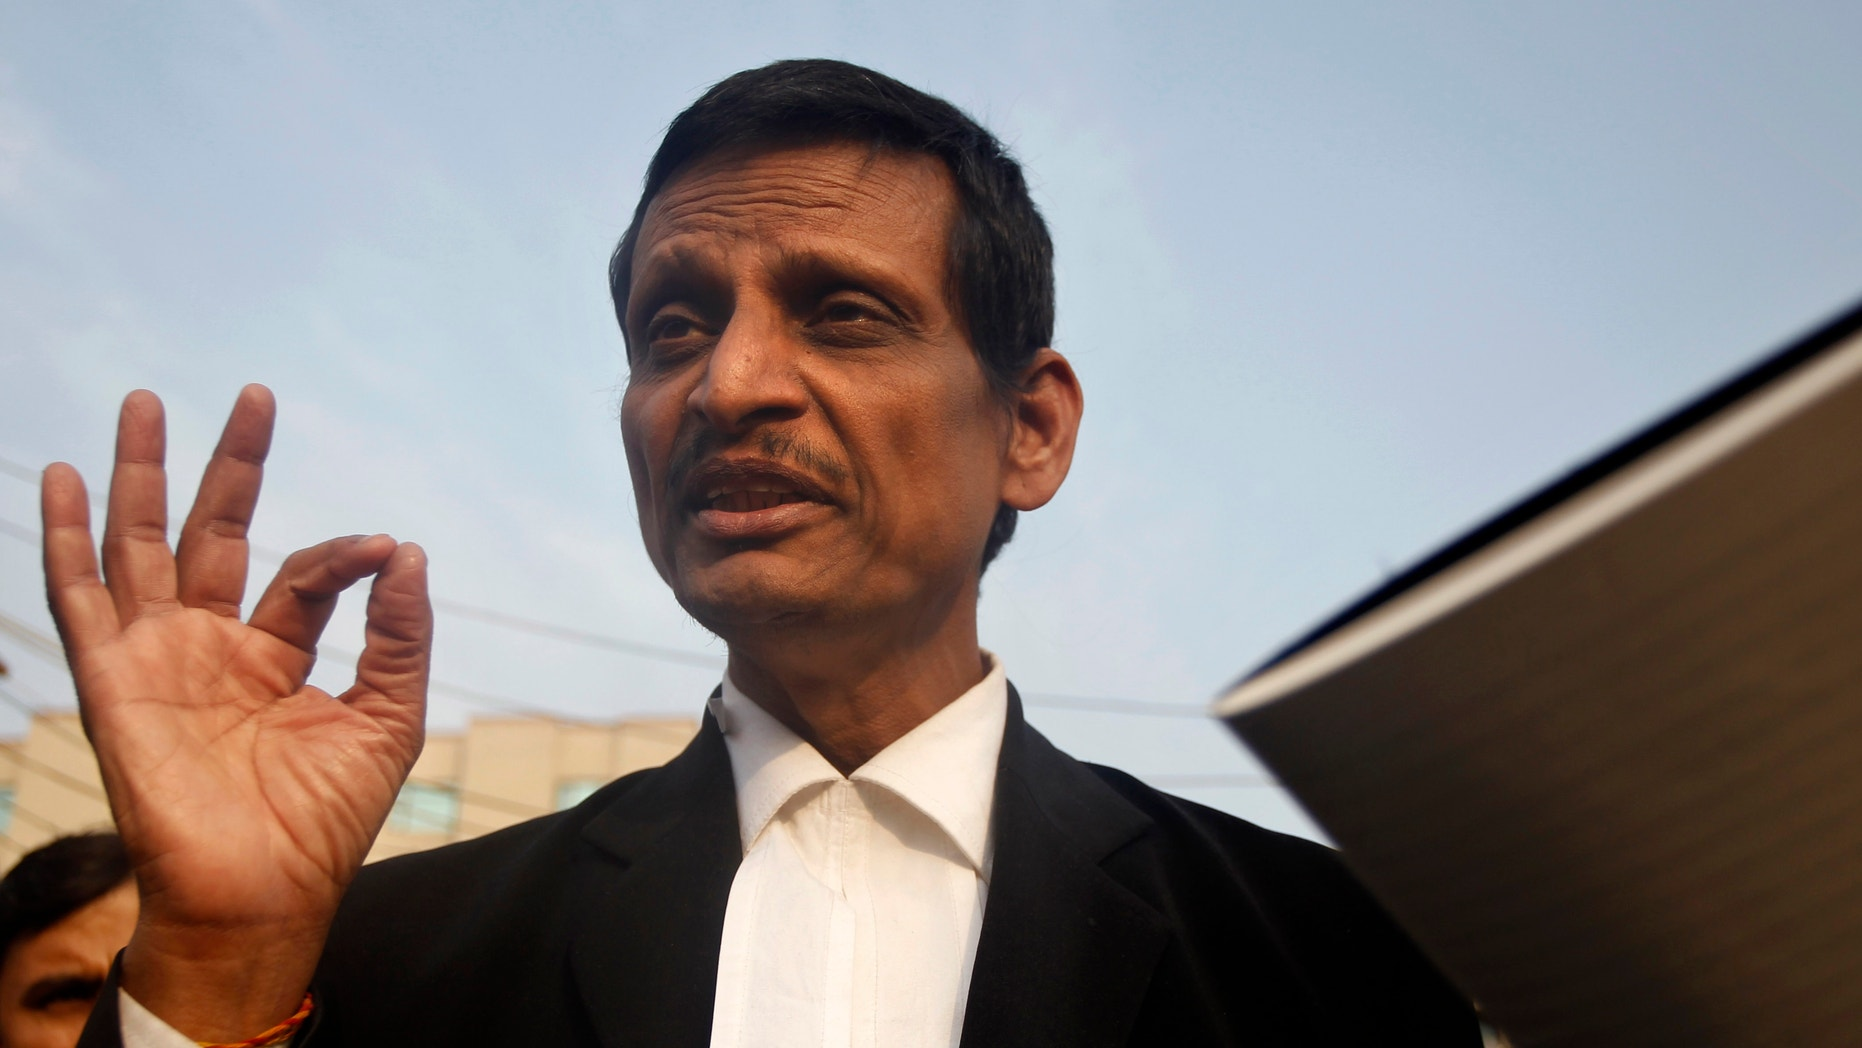 Jan. 14, 2013 - Lal Sharma, lawyer for one of the accused, speaks to journalists outside Saket district court where the accused in a gang rape are to be tried, in New Delhi, India.